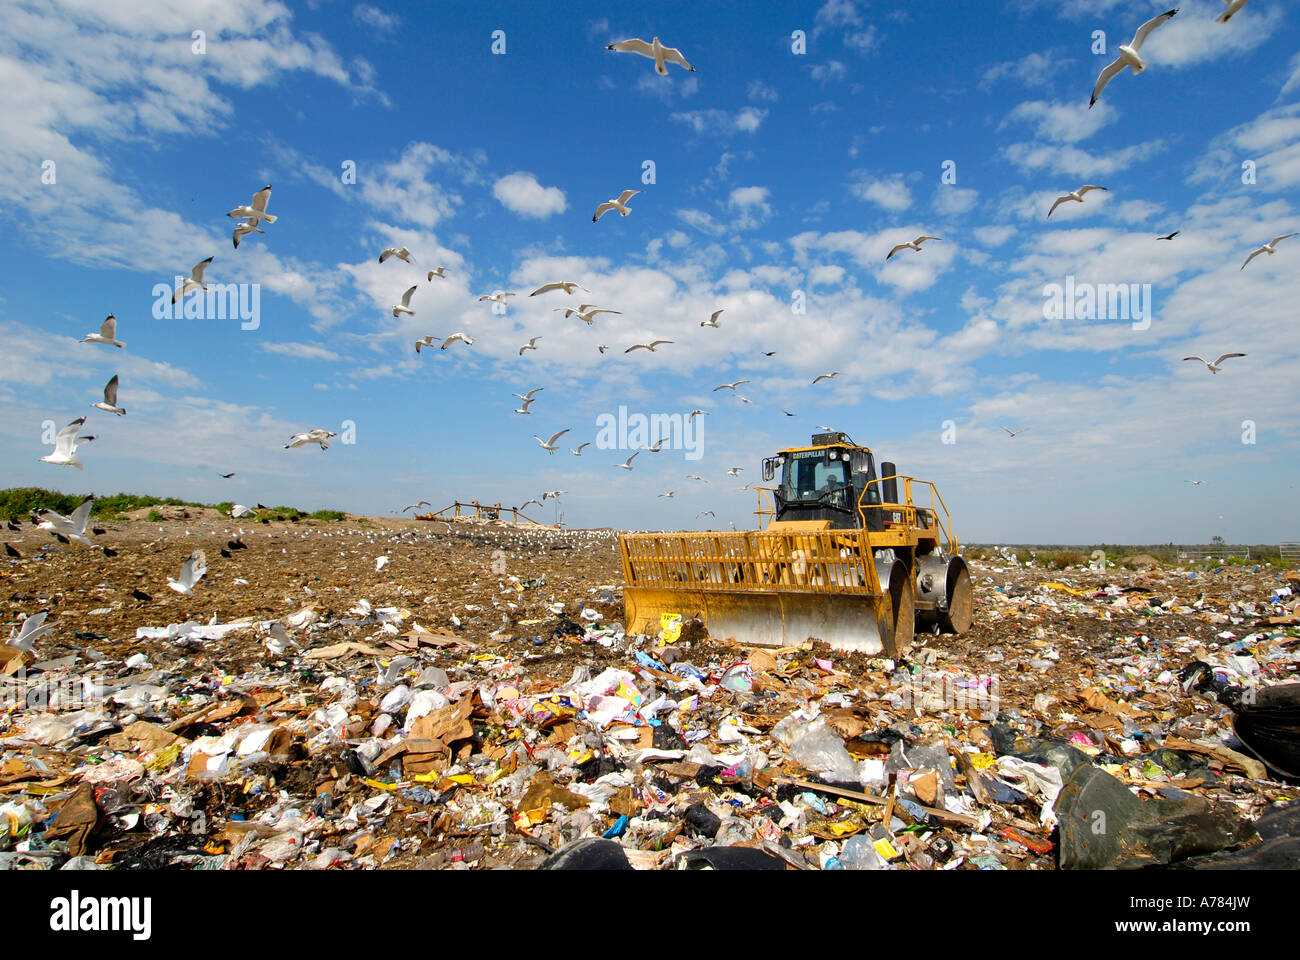 Reduce Reuse Recycle Landfill Stock Photo